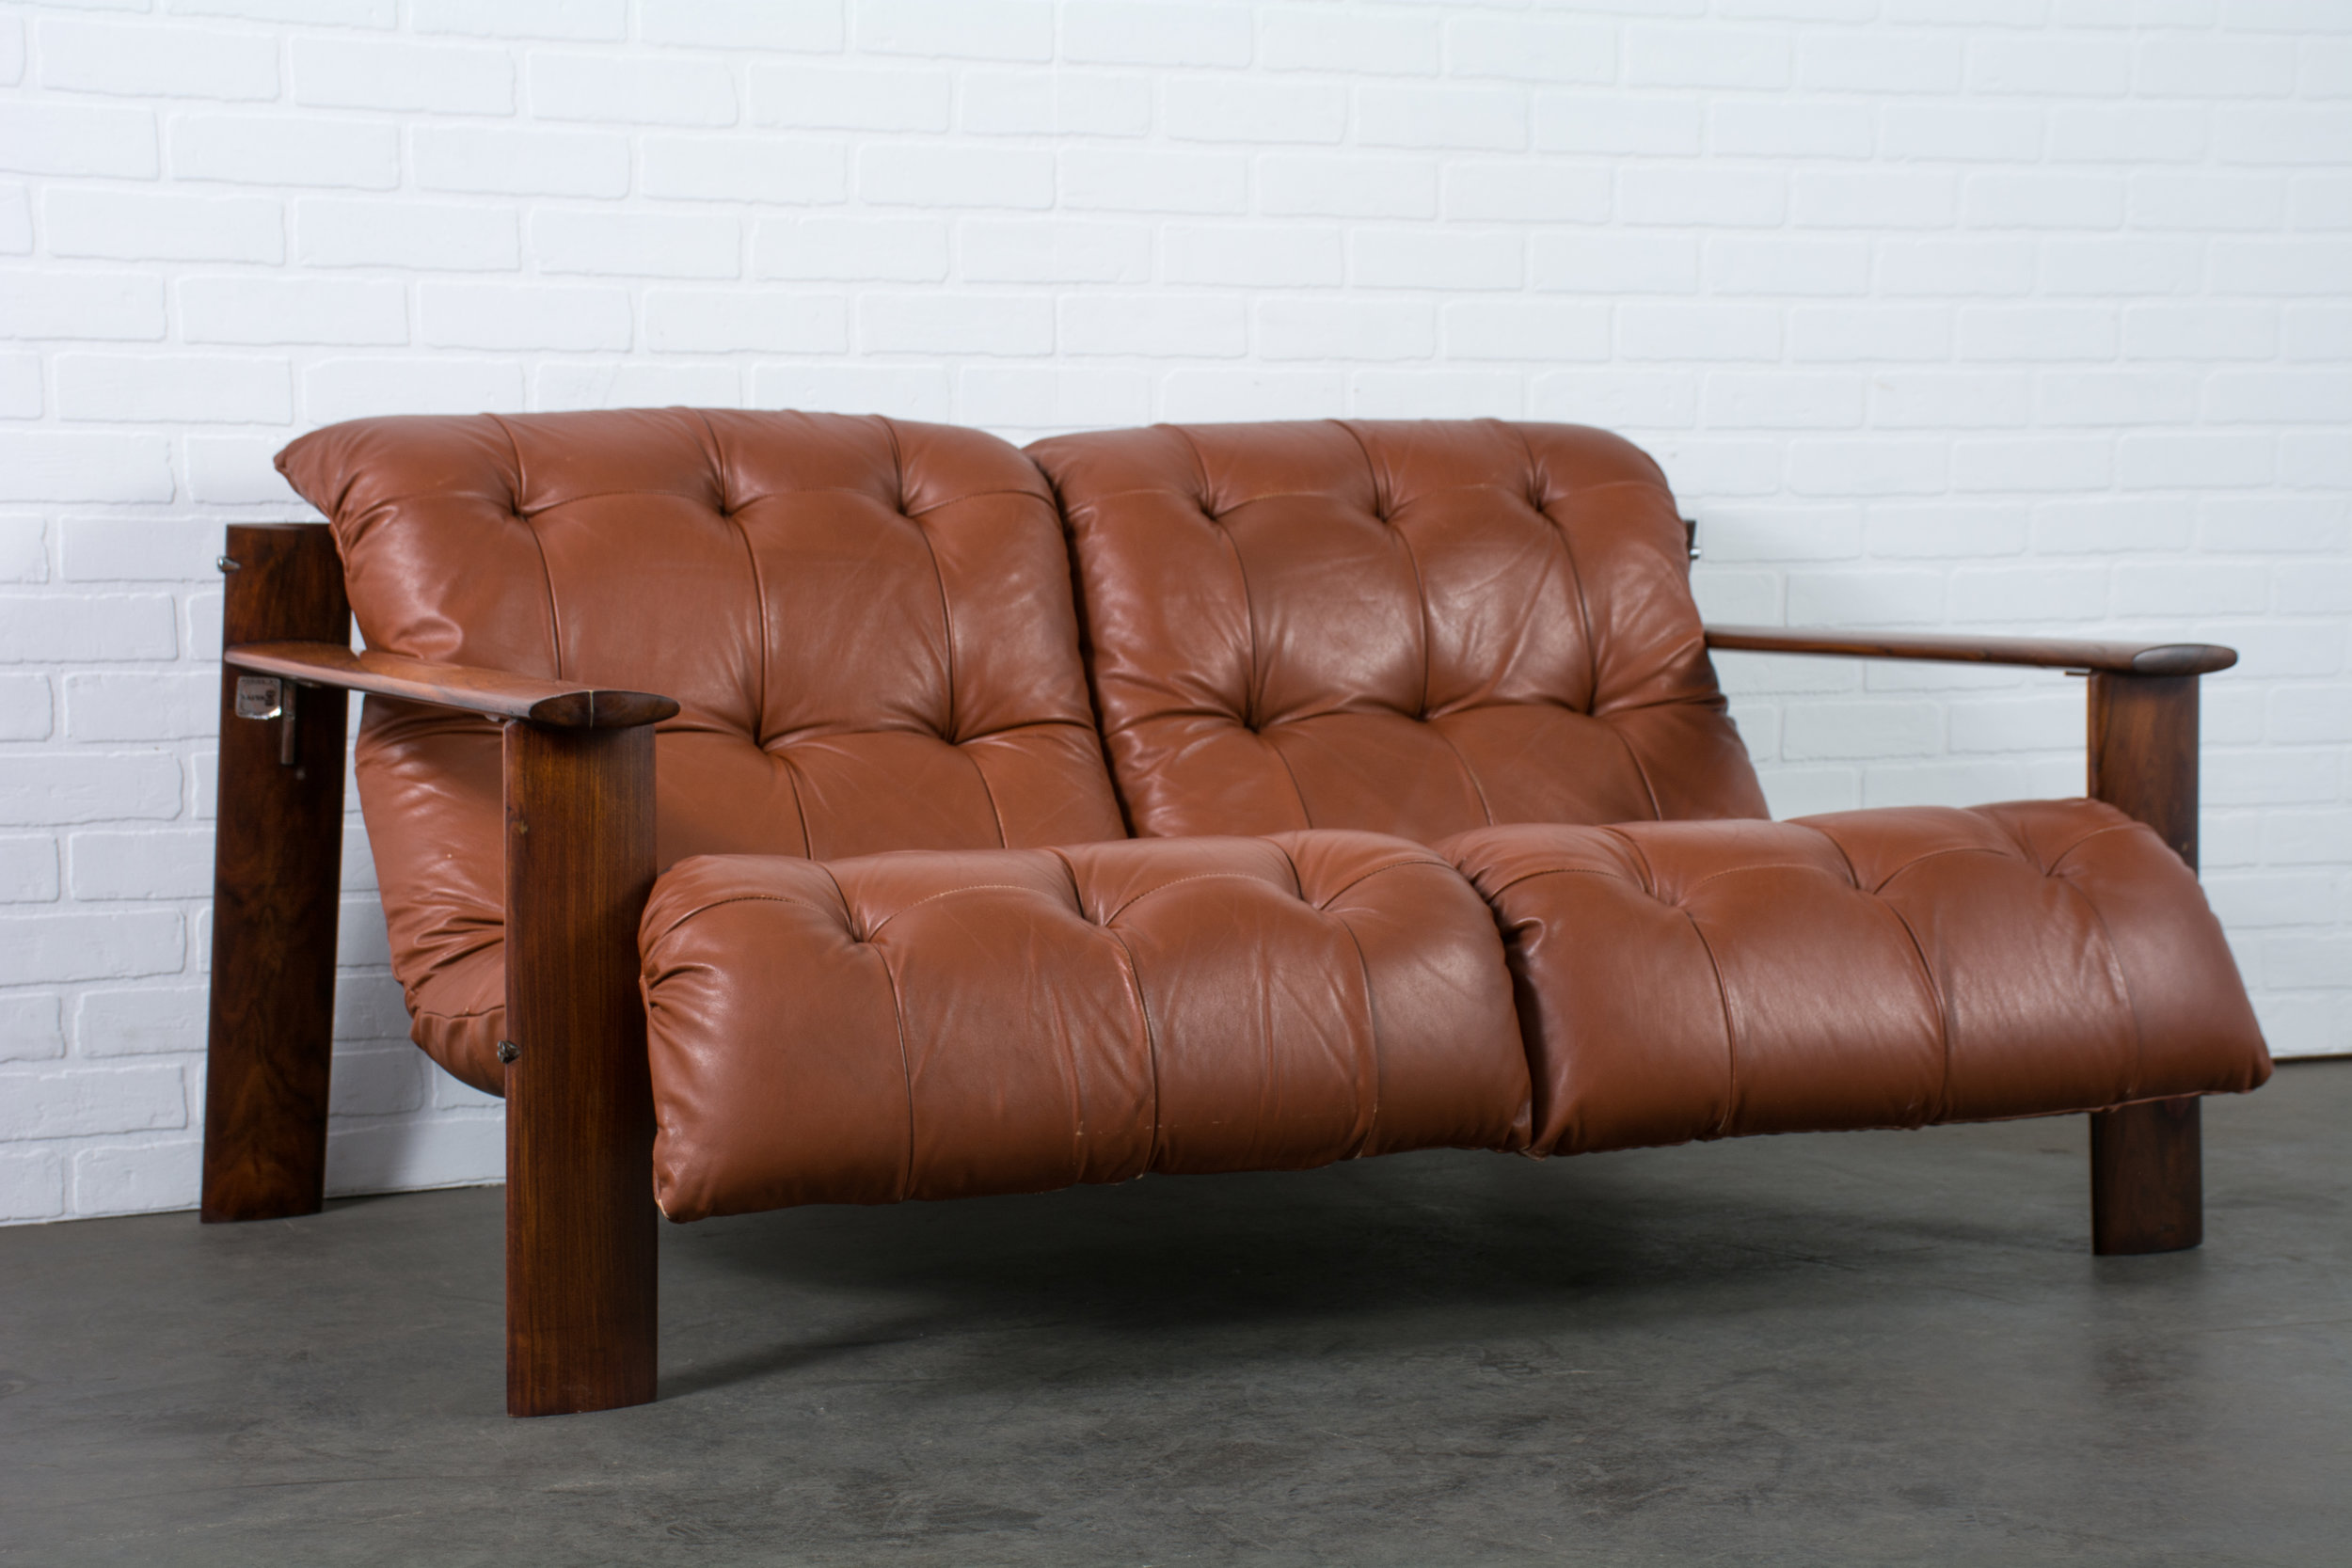 Percival Lafer Leather and Rosewood Loveseat